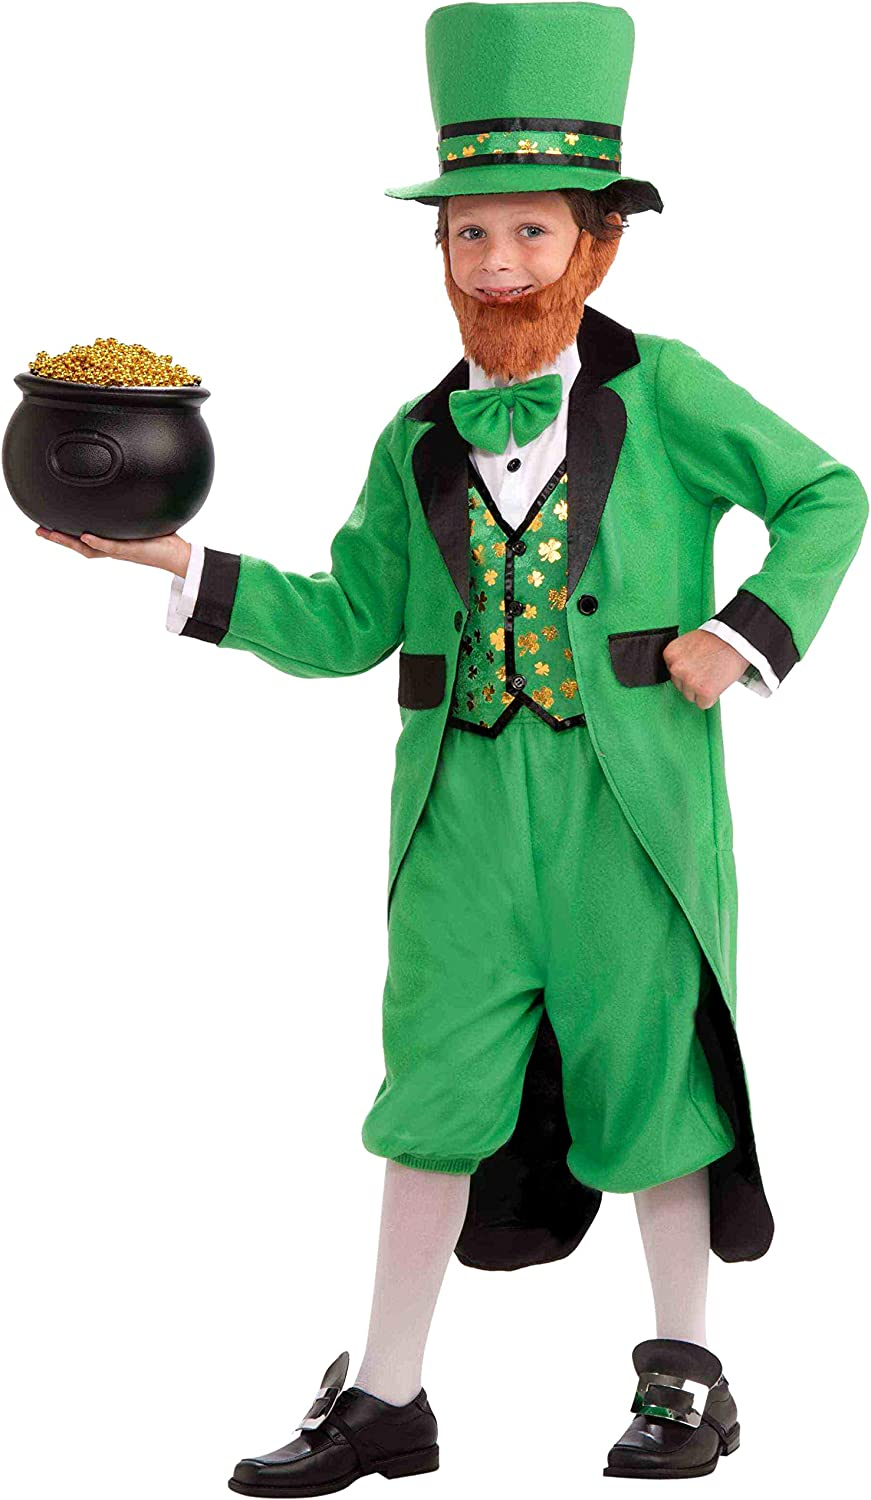 Amazon.com: Disfraz completo de Mr. Leprechaun talla mediana ...